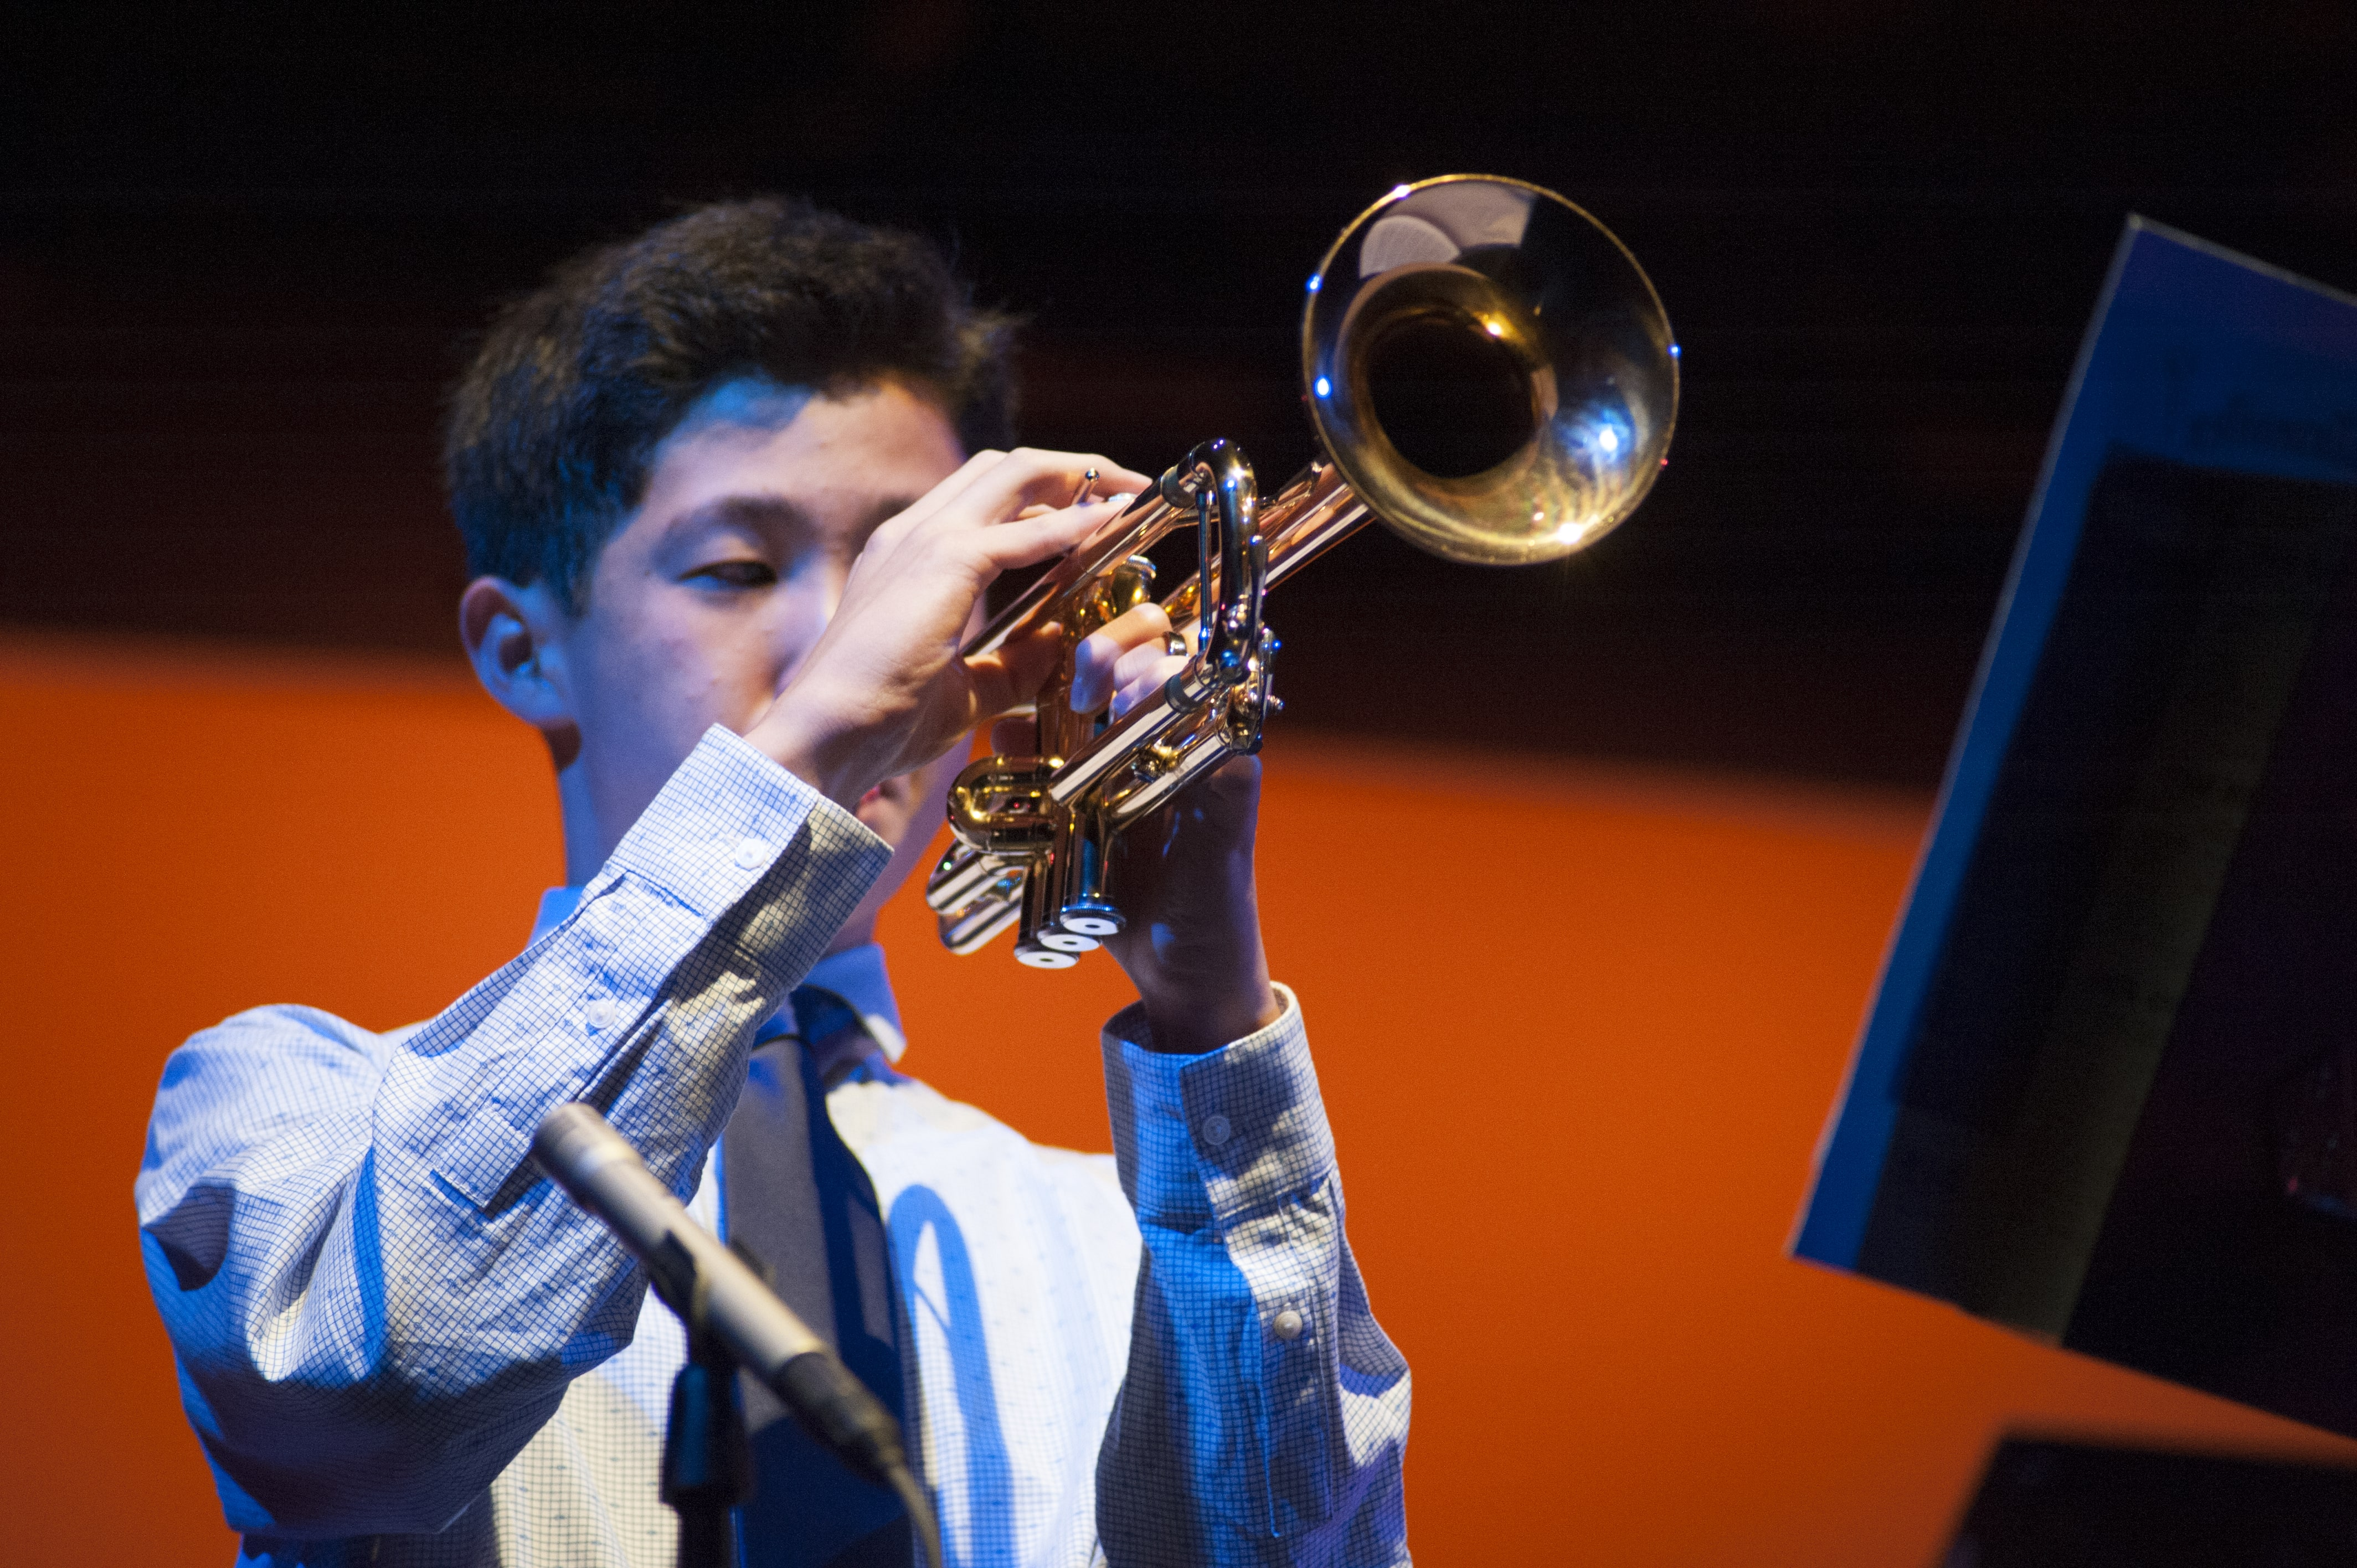 brass trumpet lessons for kids and adults near me in castro valley ca